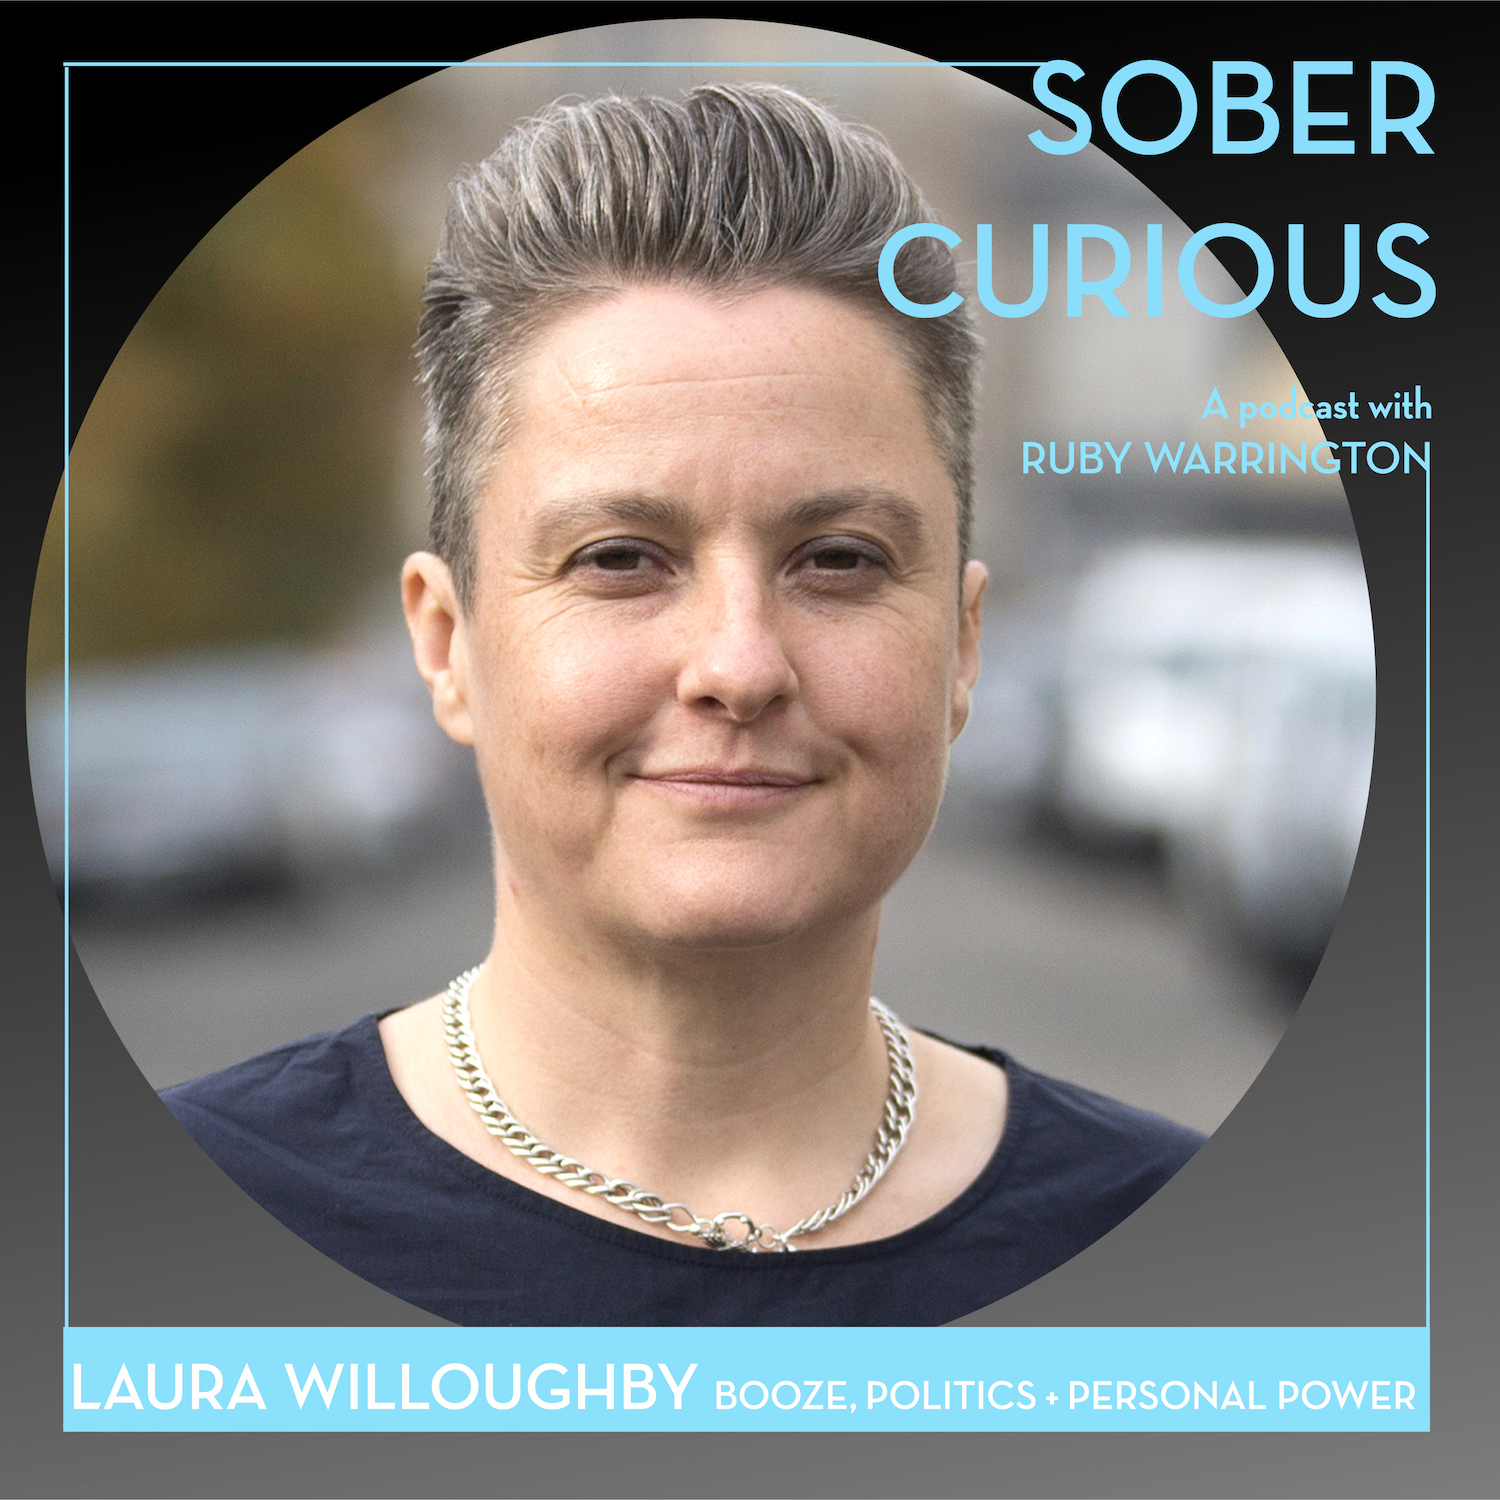 Laura Willoughby Sober Curious podcast Club Soda Ruby Warrington